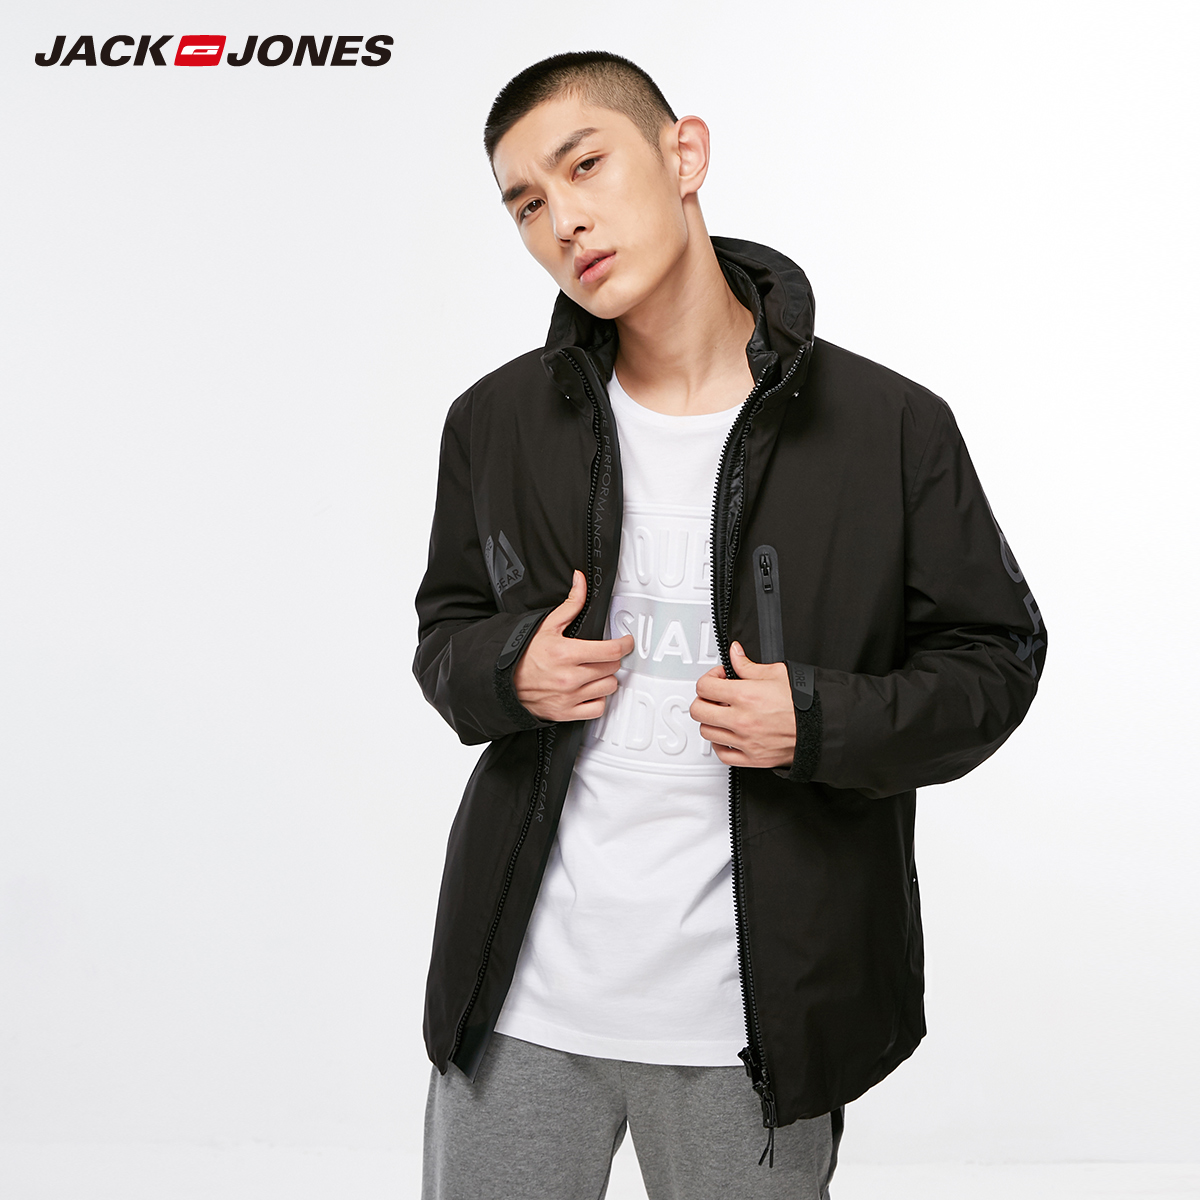 2019 New Collection Winter Jacket Men Fashion Jackets Cotton Warm Winter Coat Padded Jacket Quilted Jacket